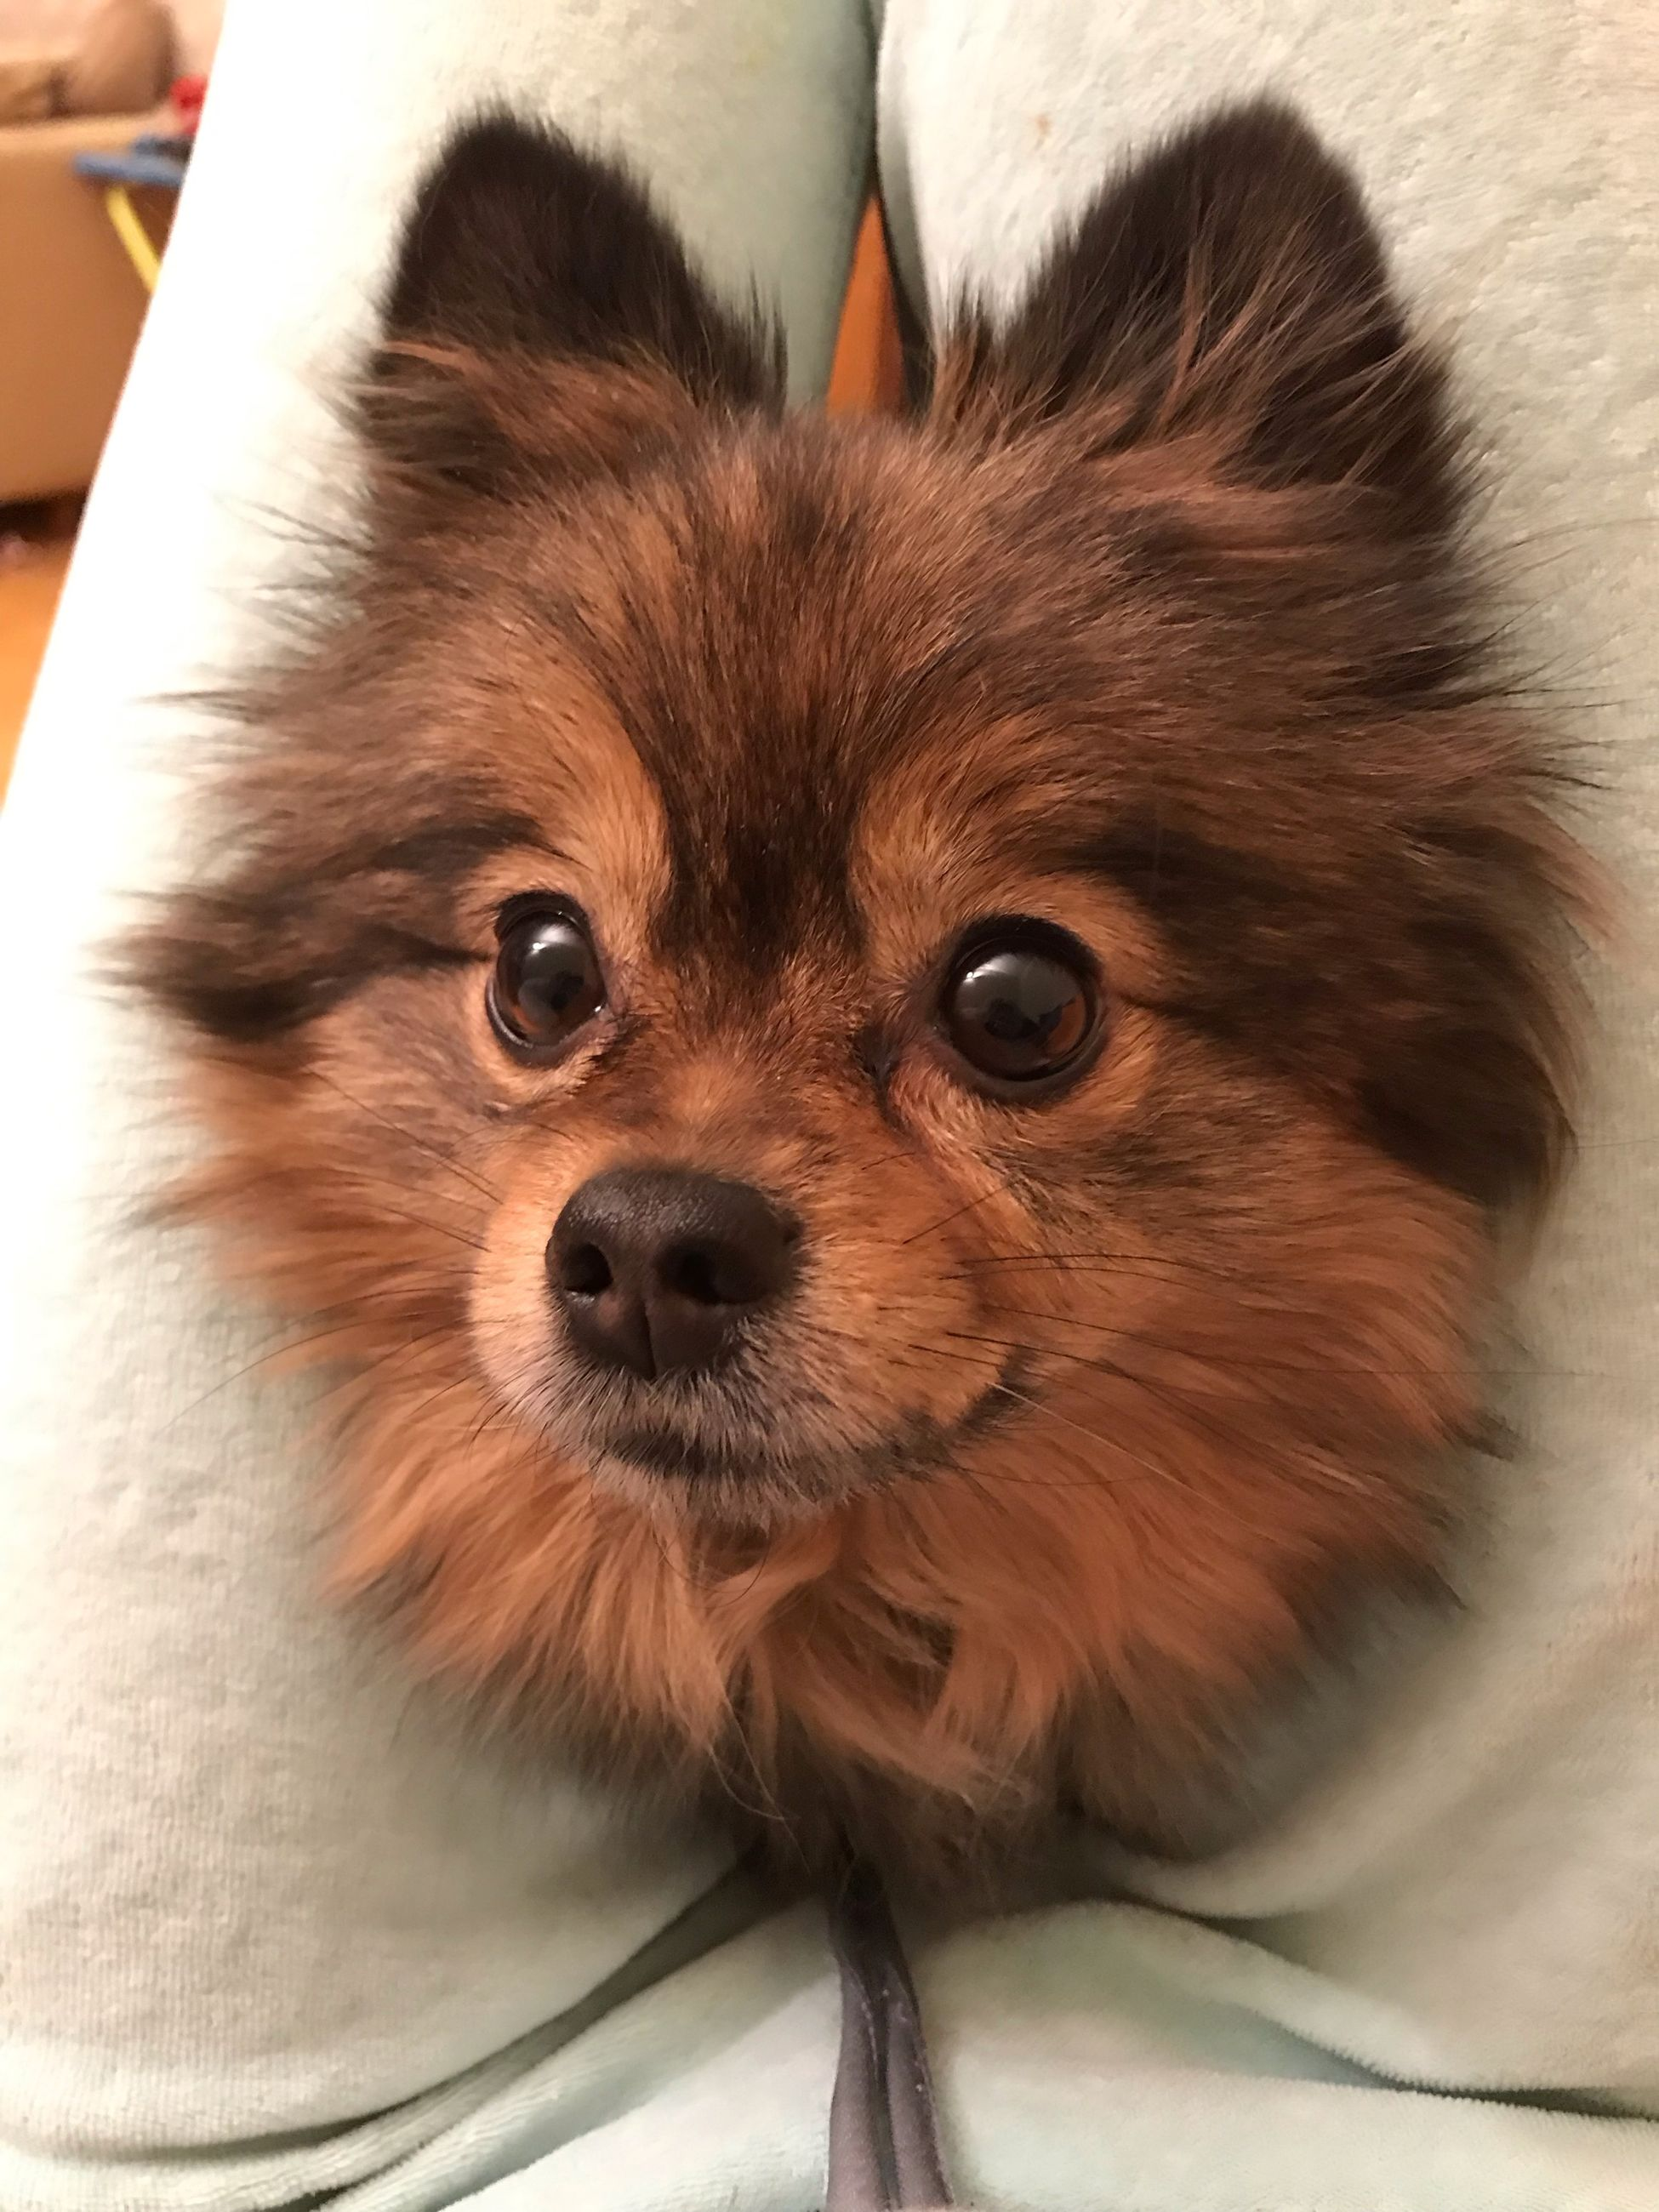 mammal, one animal, dog, domestic, canine, pets, domestic animals, vertebrate, looking at camera, portrait, indoors, close-up, no people, animal body part, lap dog, brown, small, pomeranian, animal eye